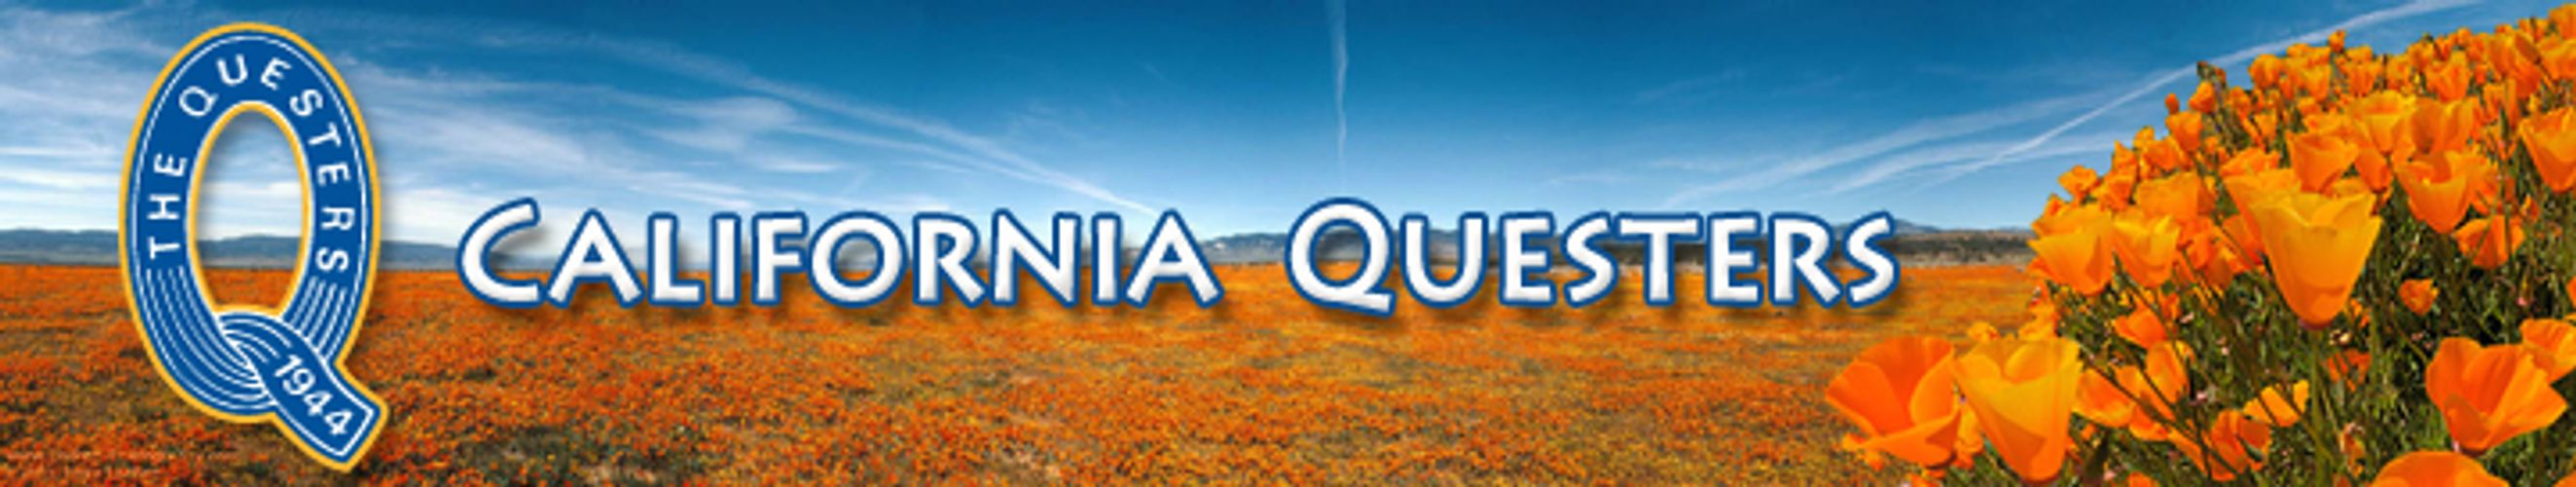 California Questers banner with logo and photo of poppies